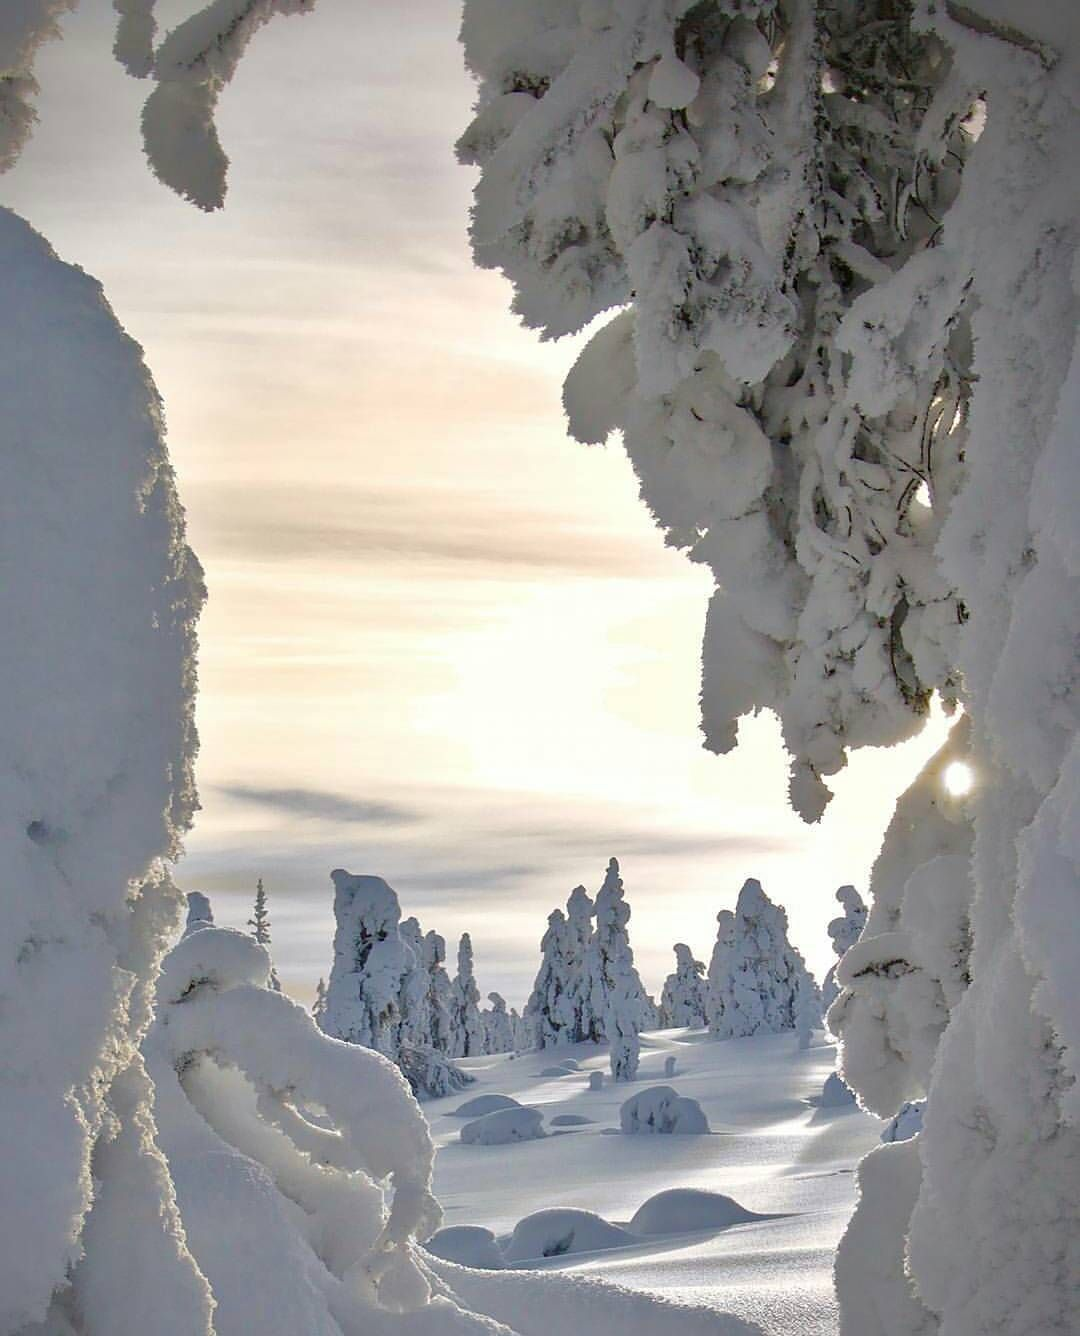 Winter Dreams In Yll Lapland Finland